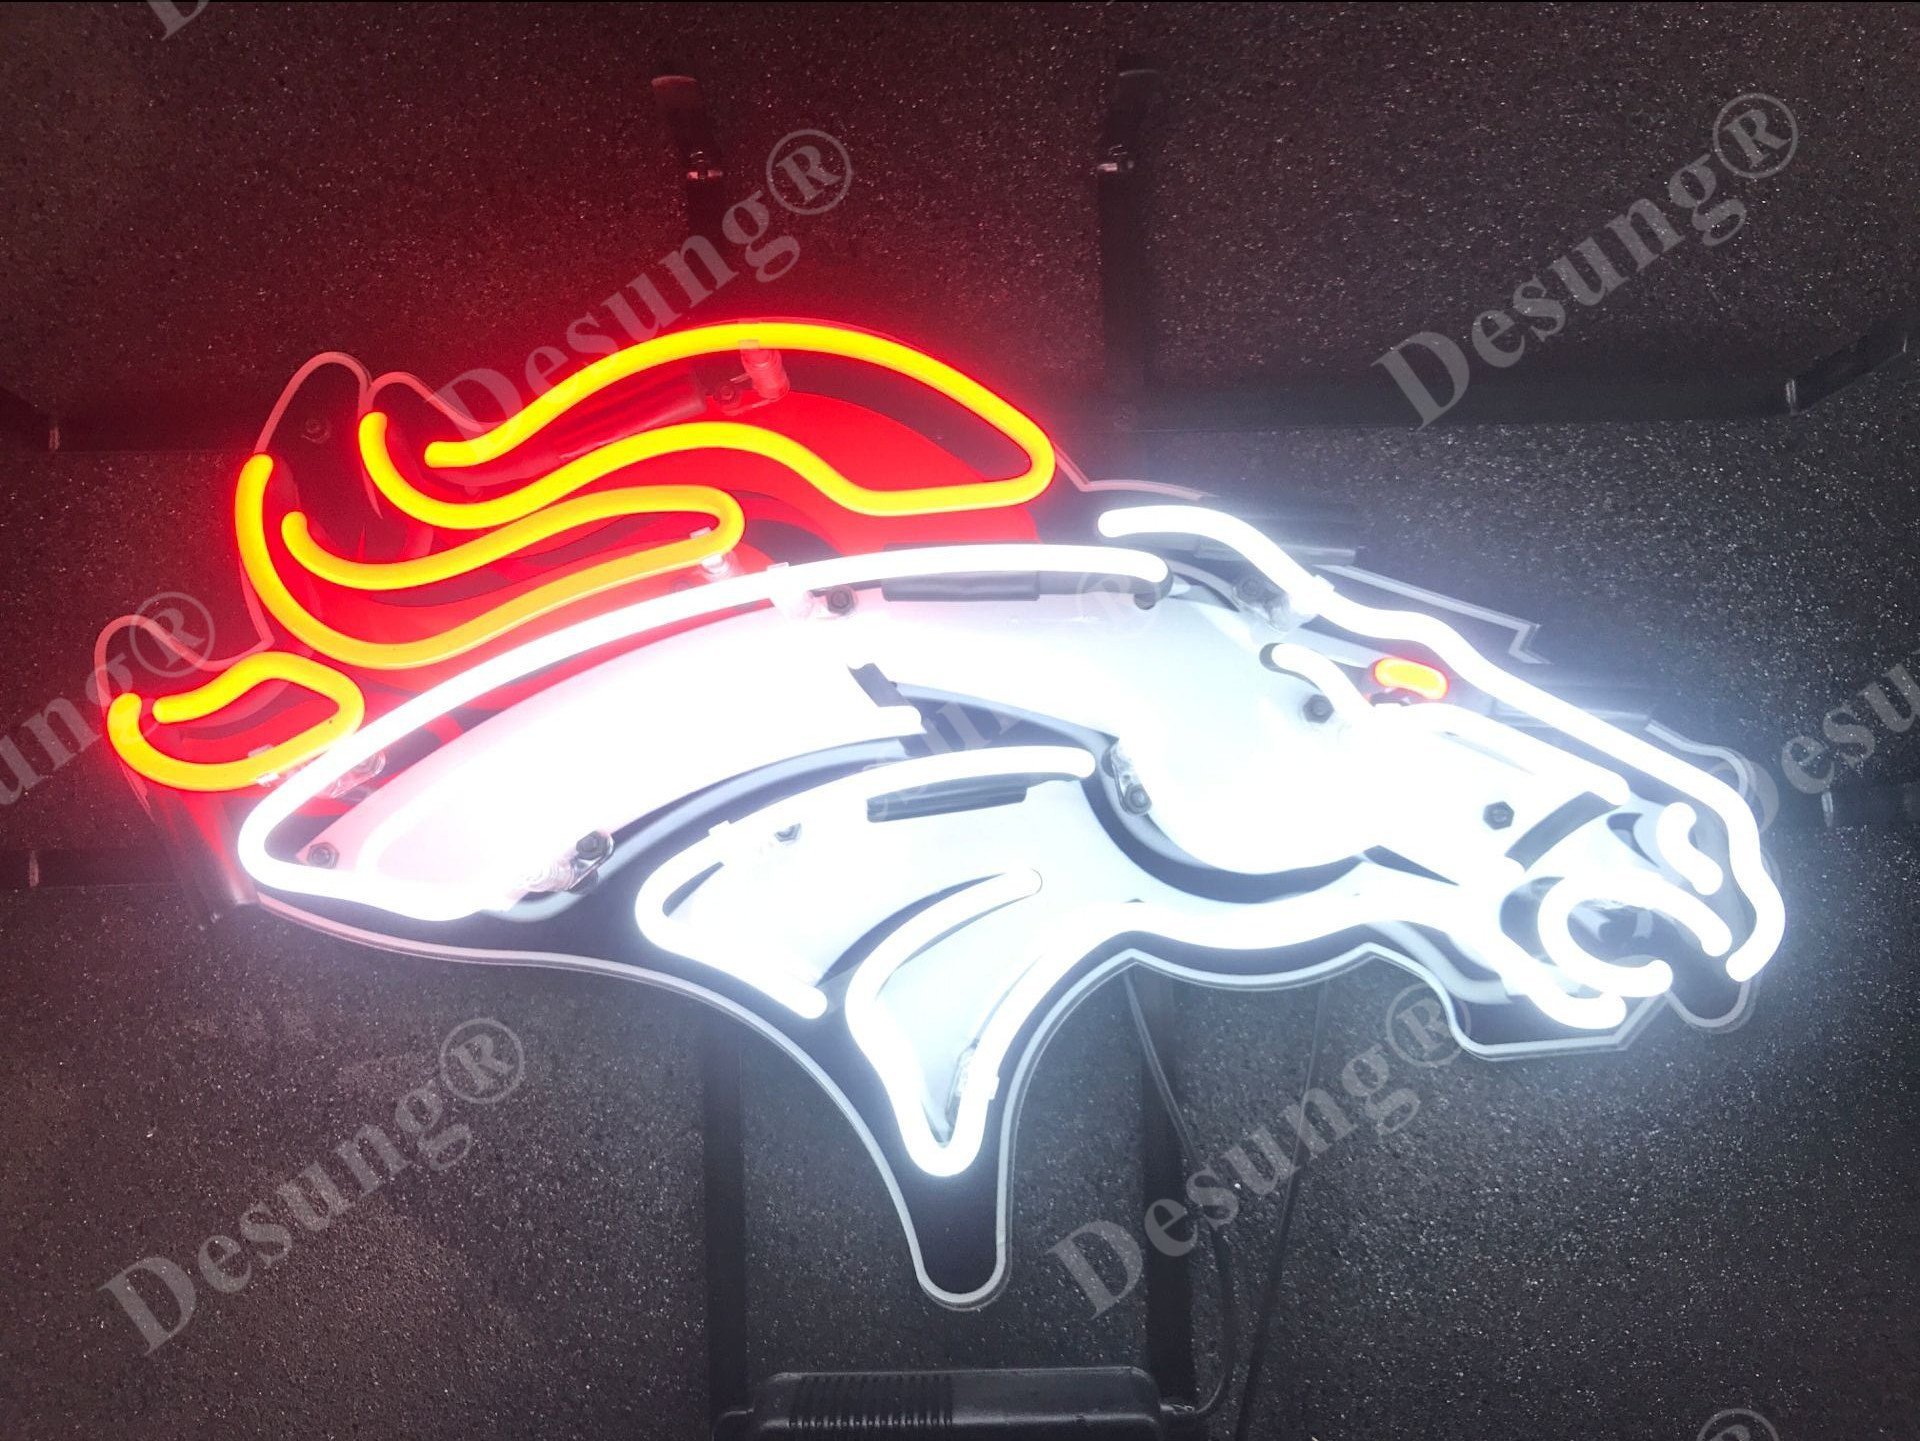 Desung New 19''x15'' Sports Team DB Neon Sign (Various Sizes) with HD Vivid Printing Technology Unique Handmade Neon Lamp Light HD01